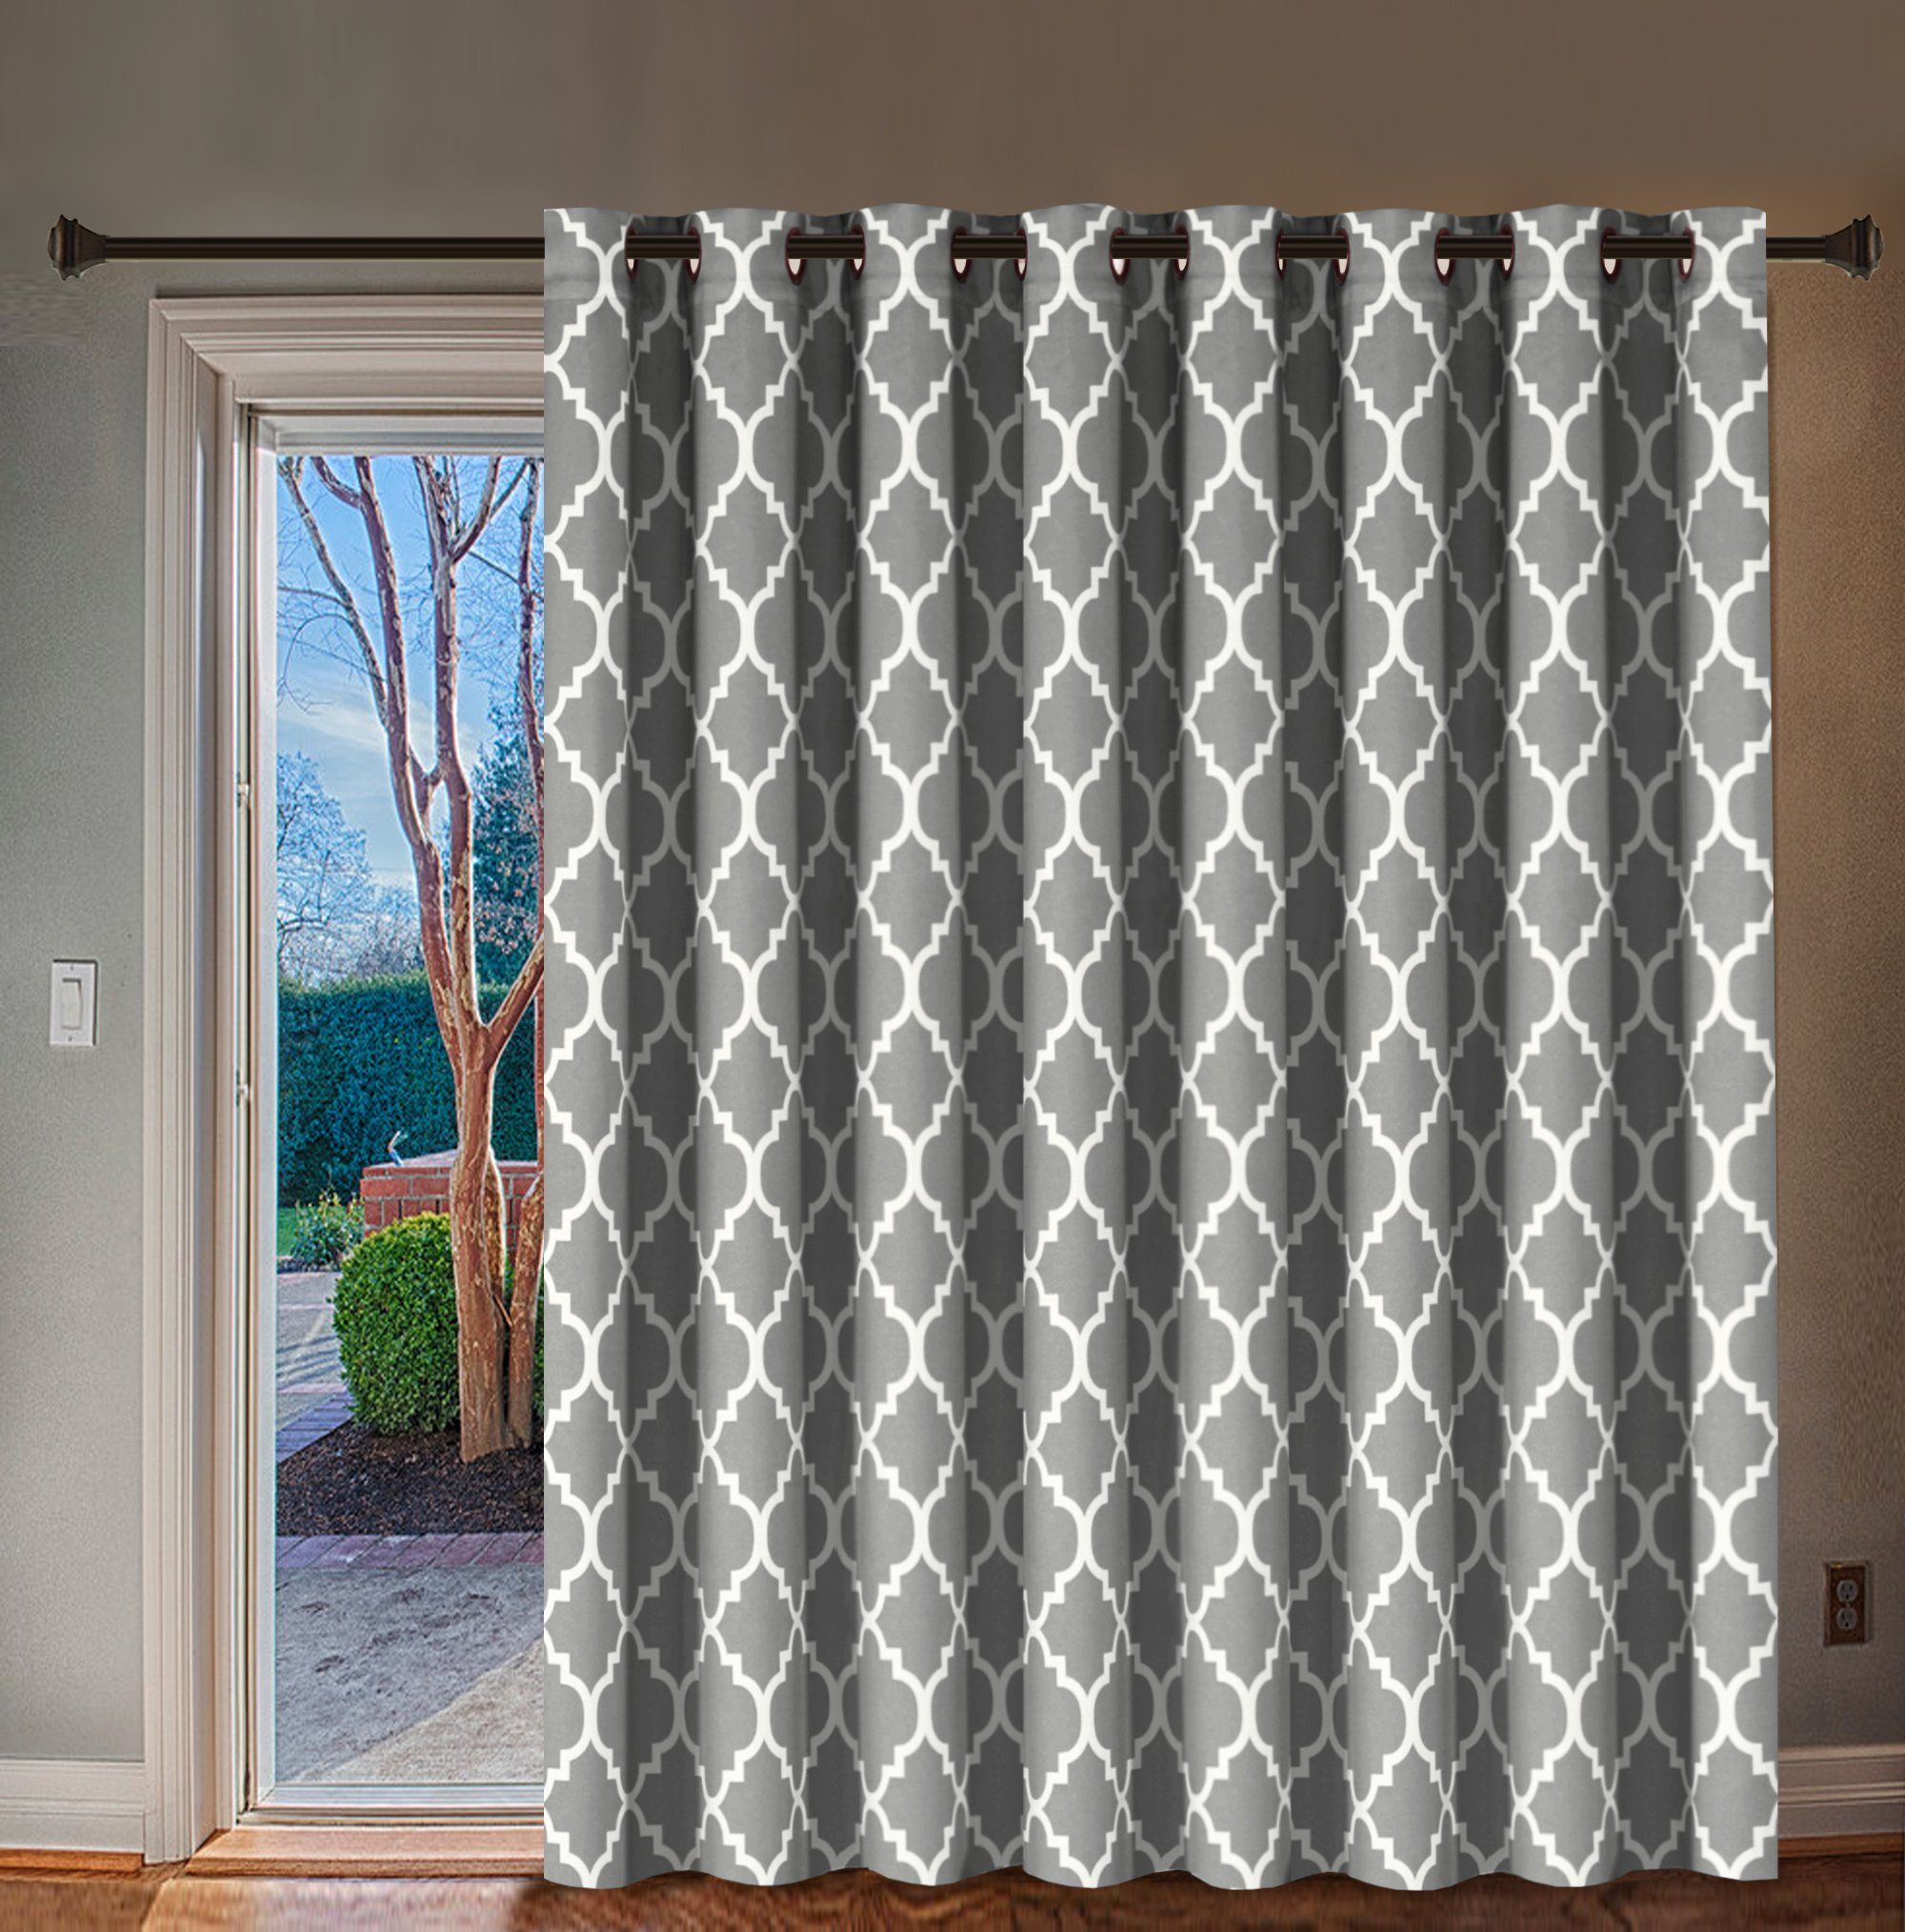 H Versailtex Blackout Printed Curtains Extra Long And Wide Thermal Insulated Panels Grommet Wider Curtain Sliding Door Curtains Patio Door Curtains Patio Doors